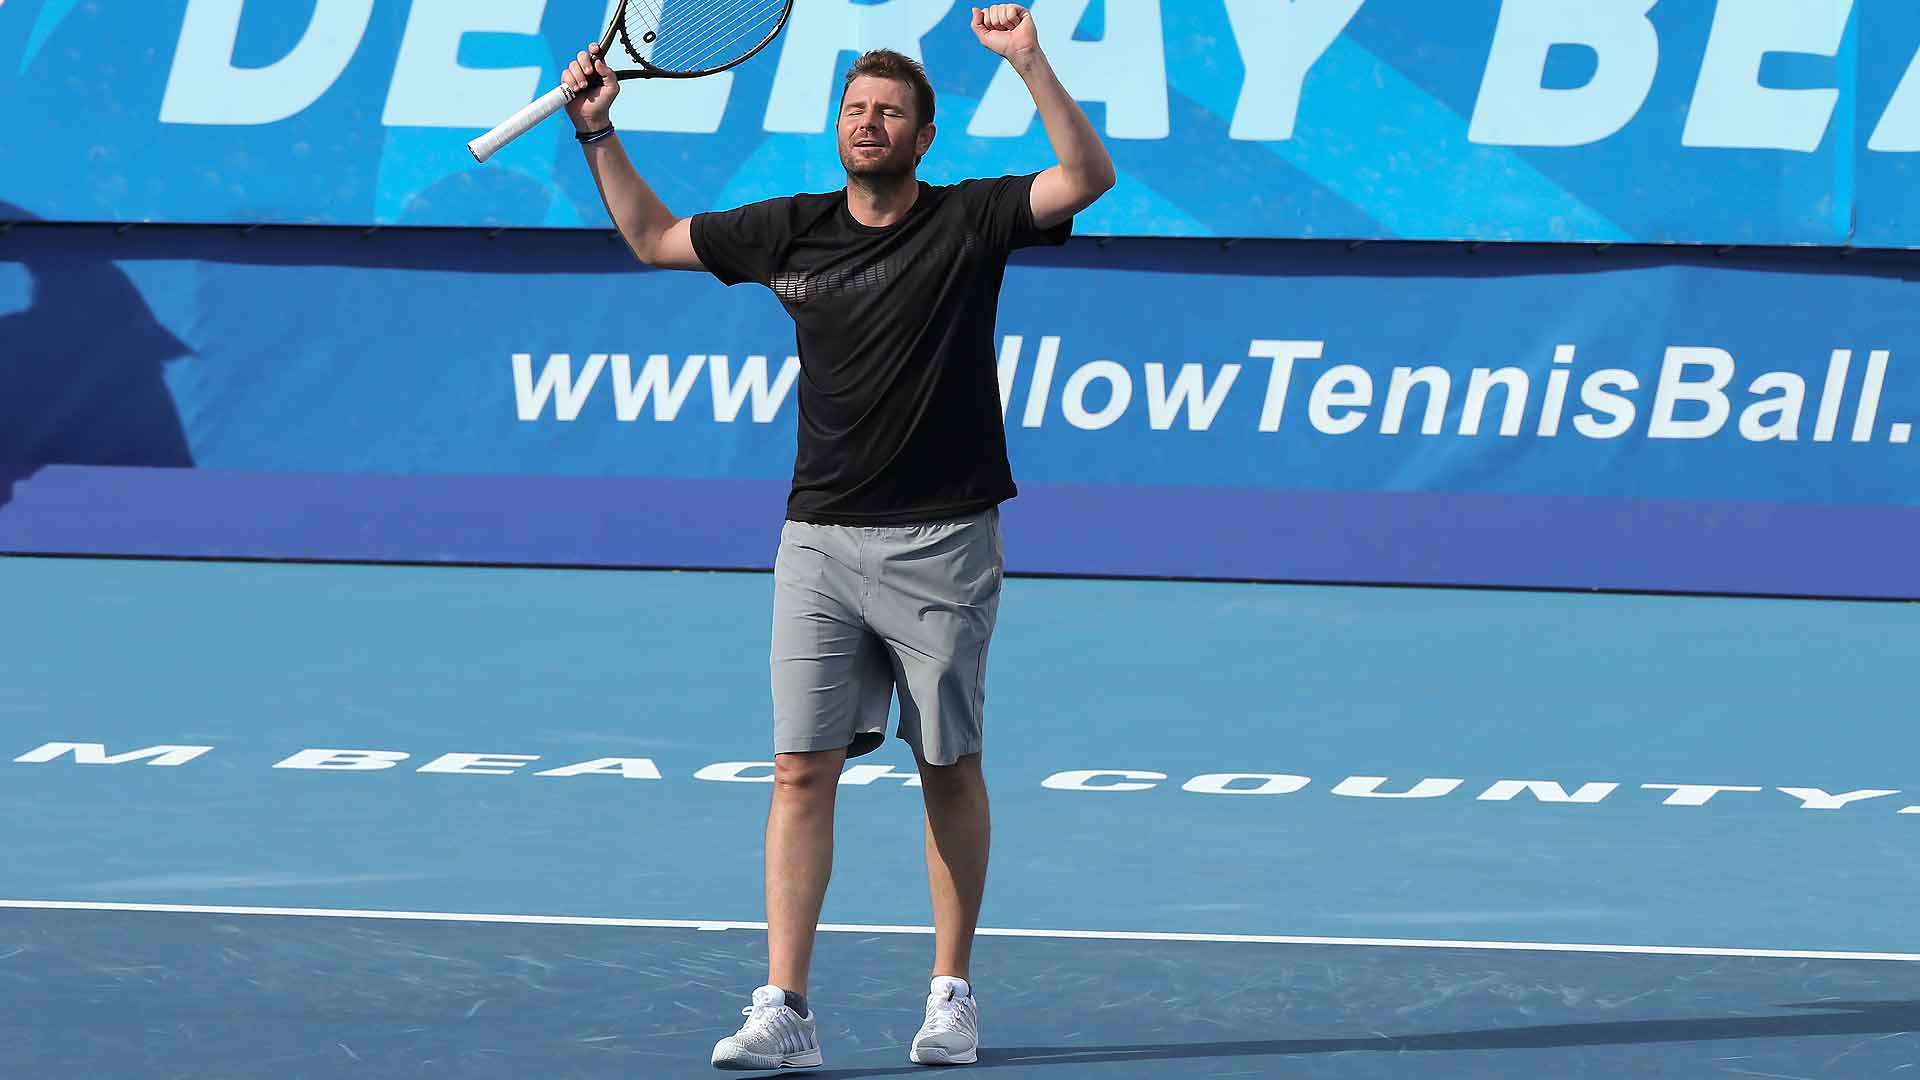 Mardy Fish helps give Team USA overall victory over Team International in Delray Beach.